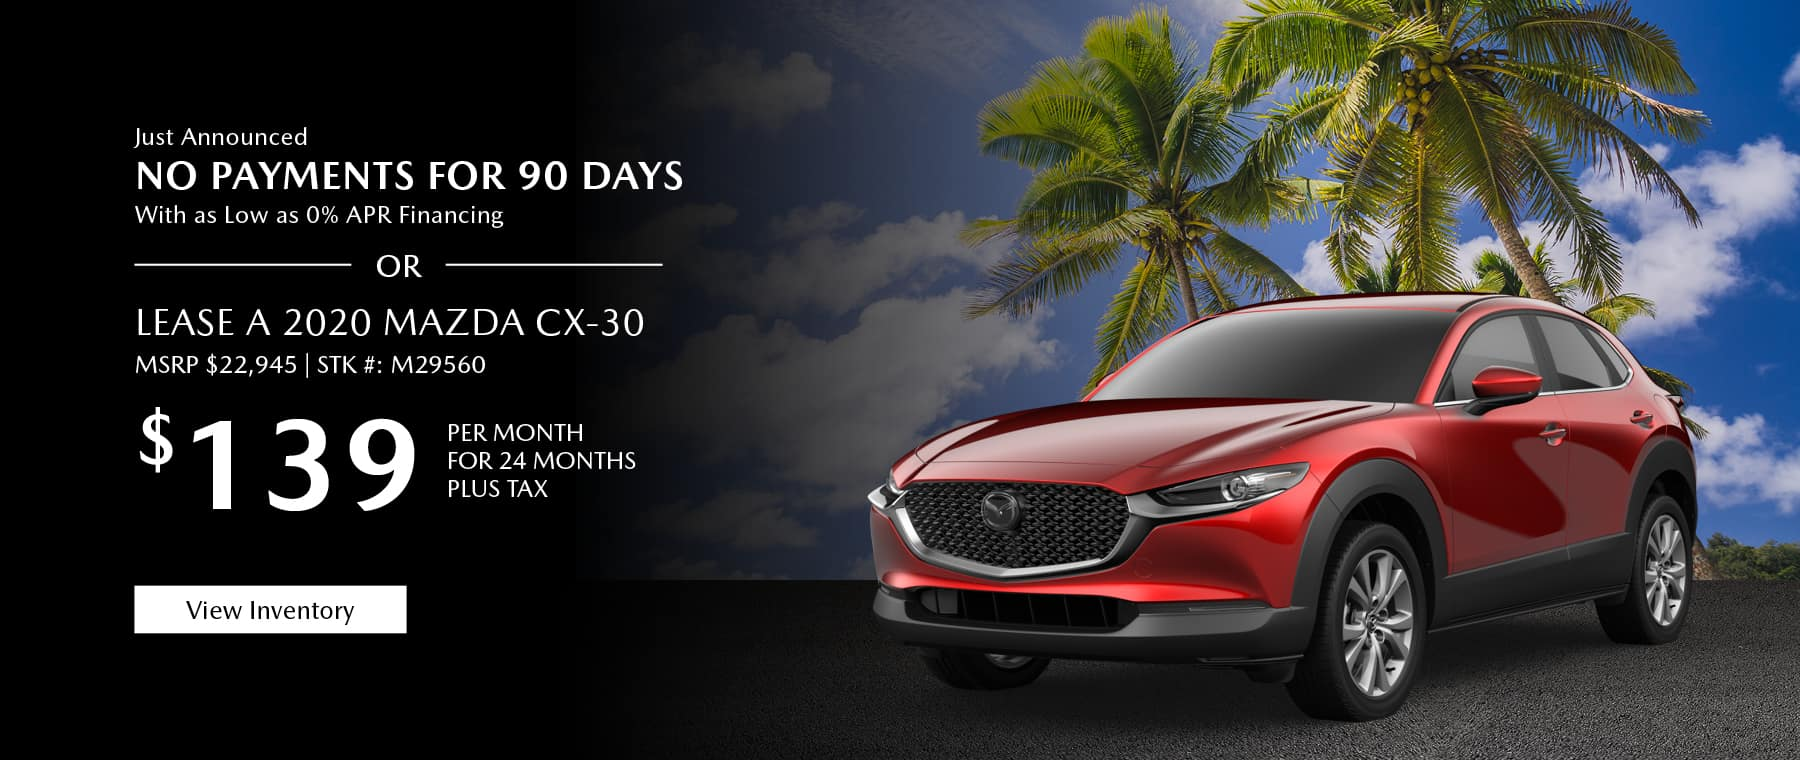 Just Announced, No payments for 90 days with as low as %0 APR financing, or lease the 2020 Mazda CX-30 for $139 per month, plus tax.